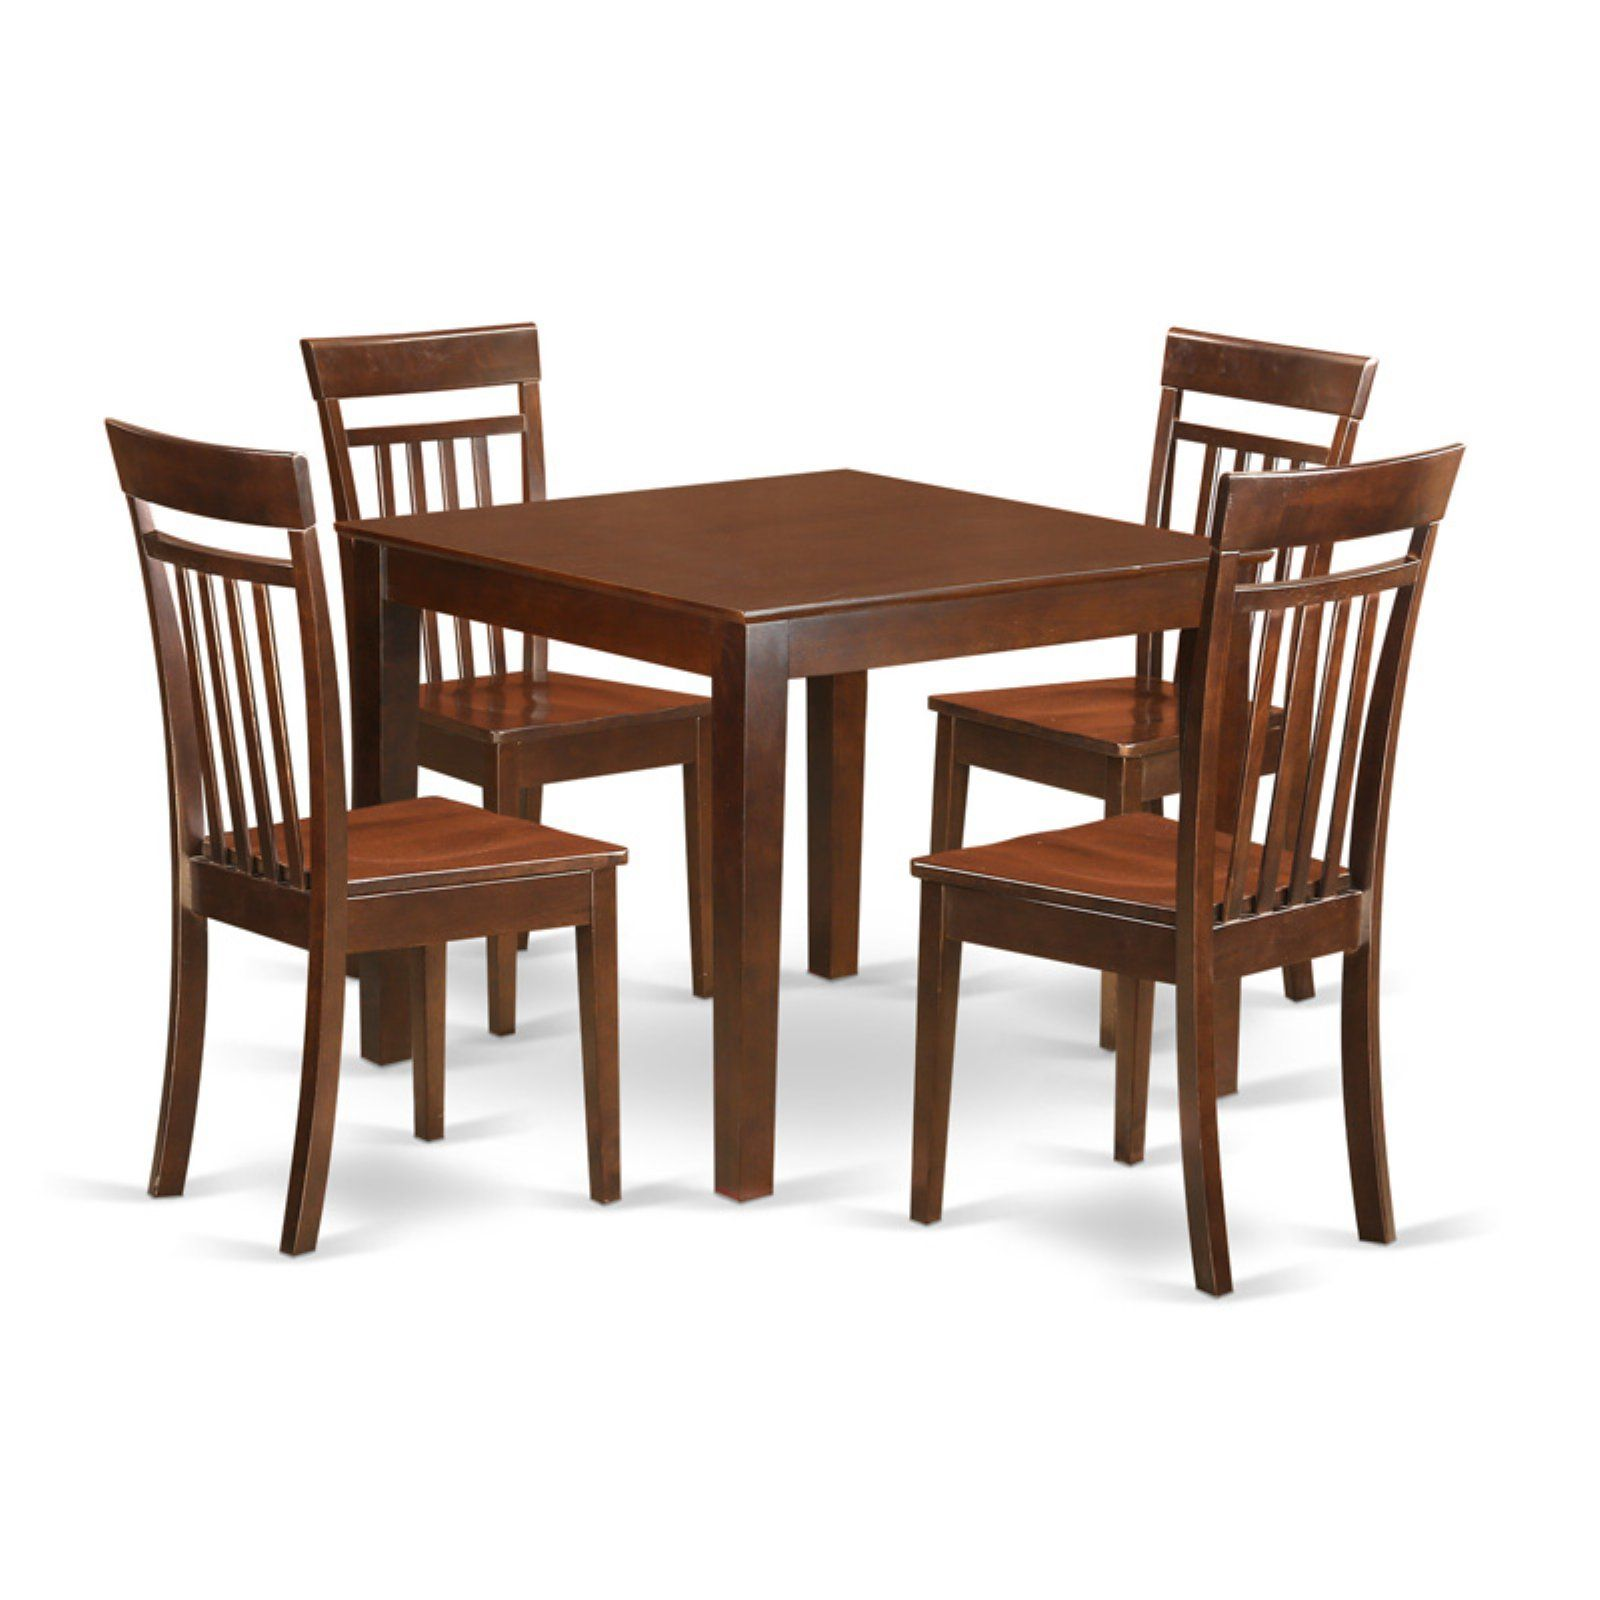 East West Furniture 5 Piece Sheraton Modern Square Dinette Dining